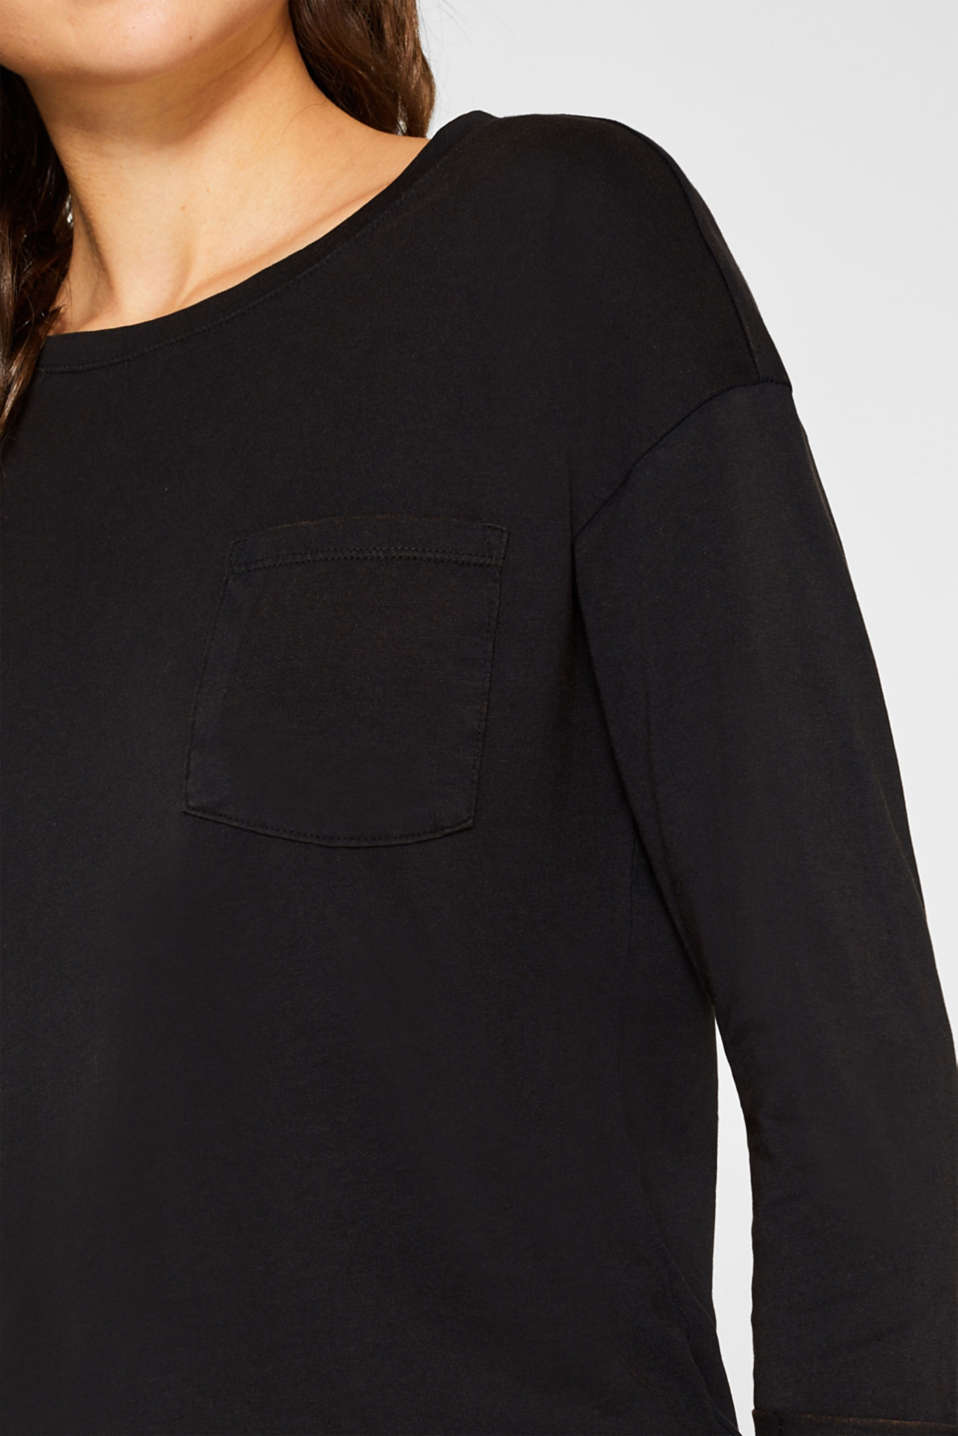 Top in a garment-washed look, 100% cotton, BLACK, detail image number 2